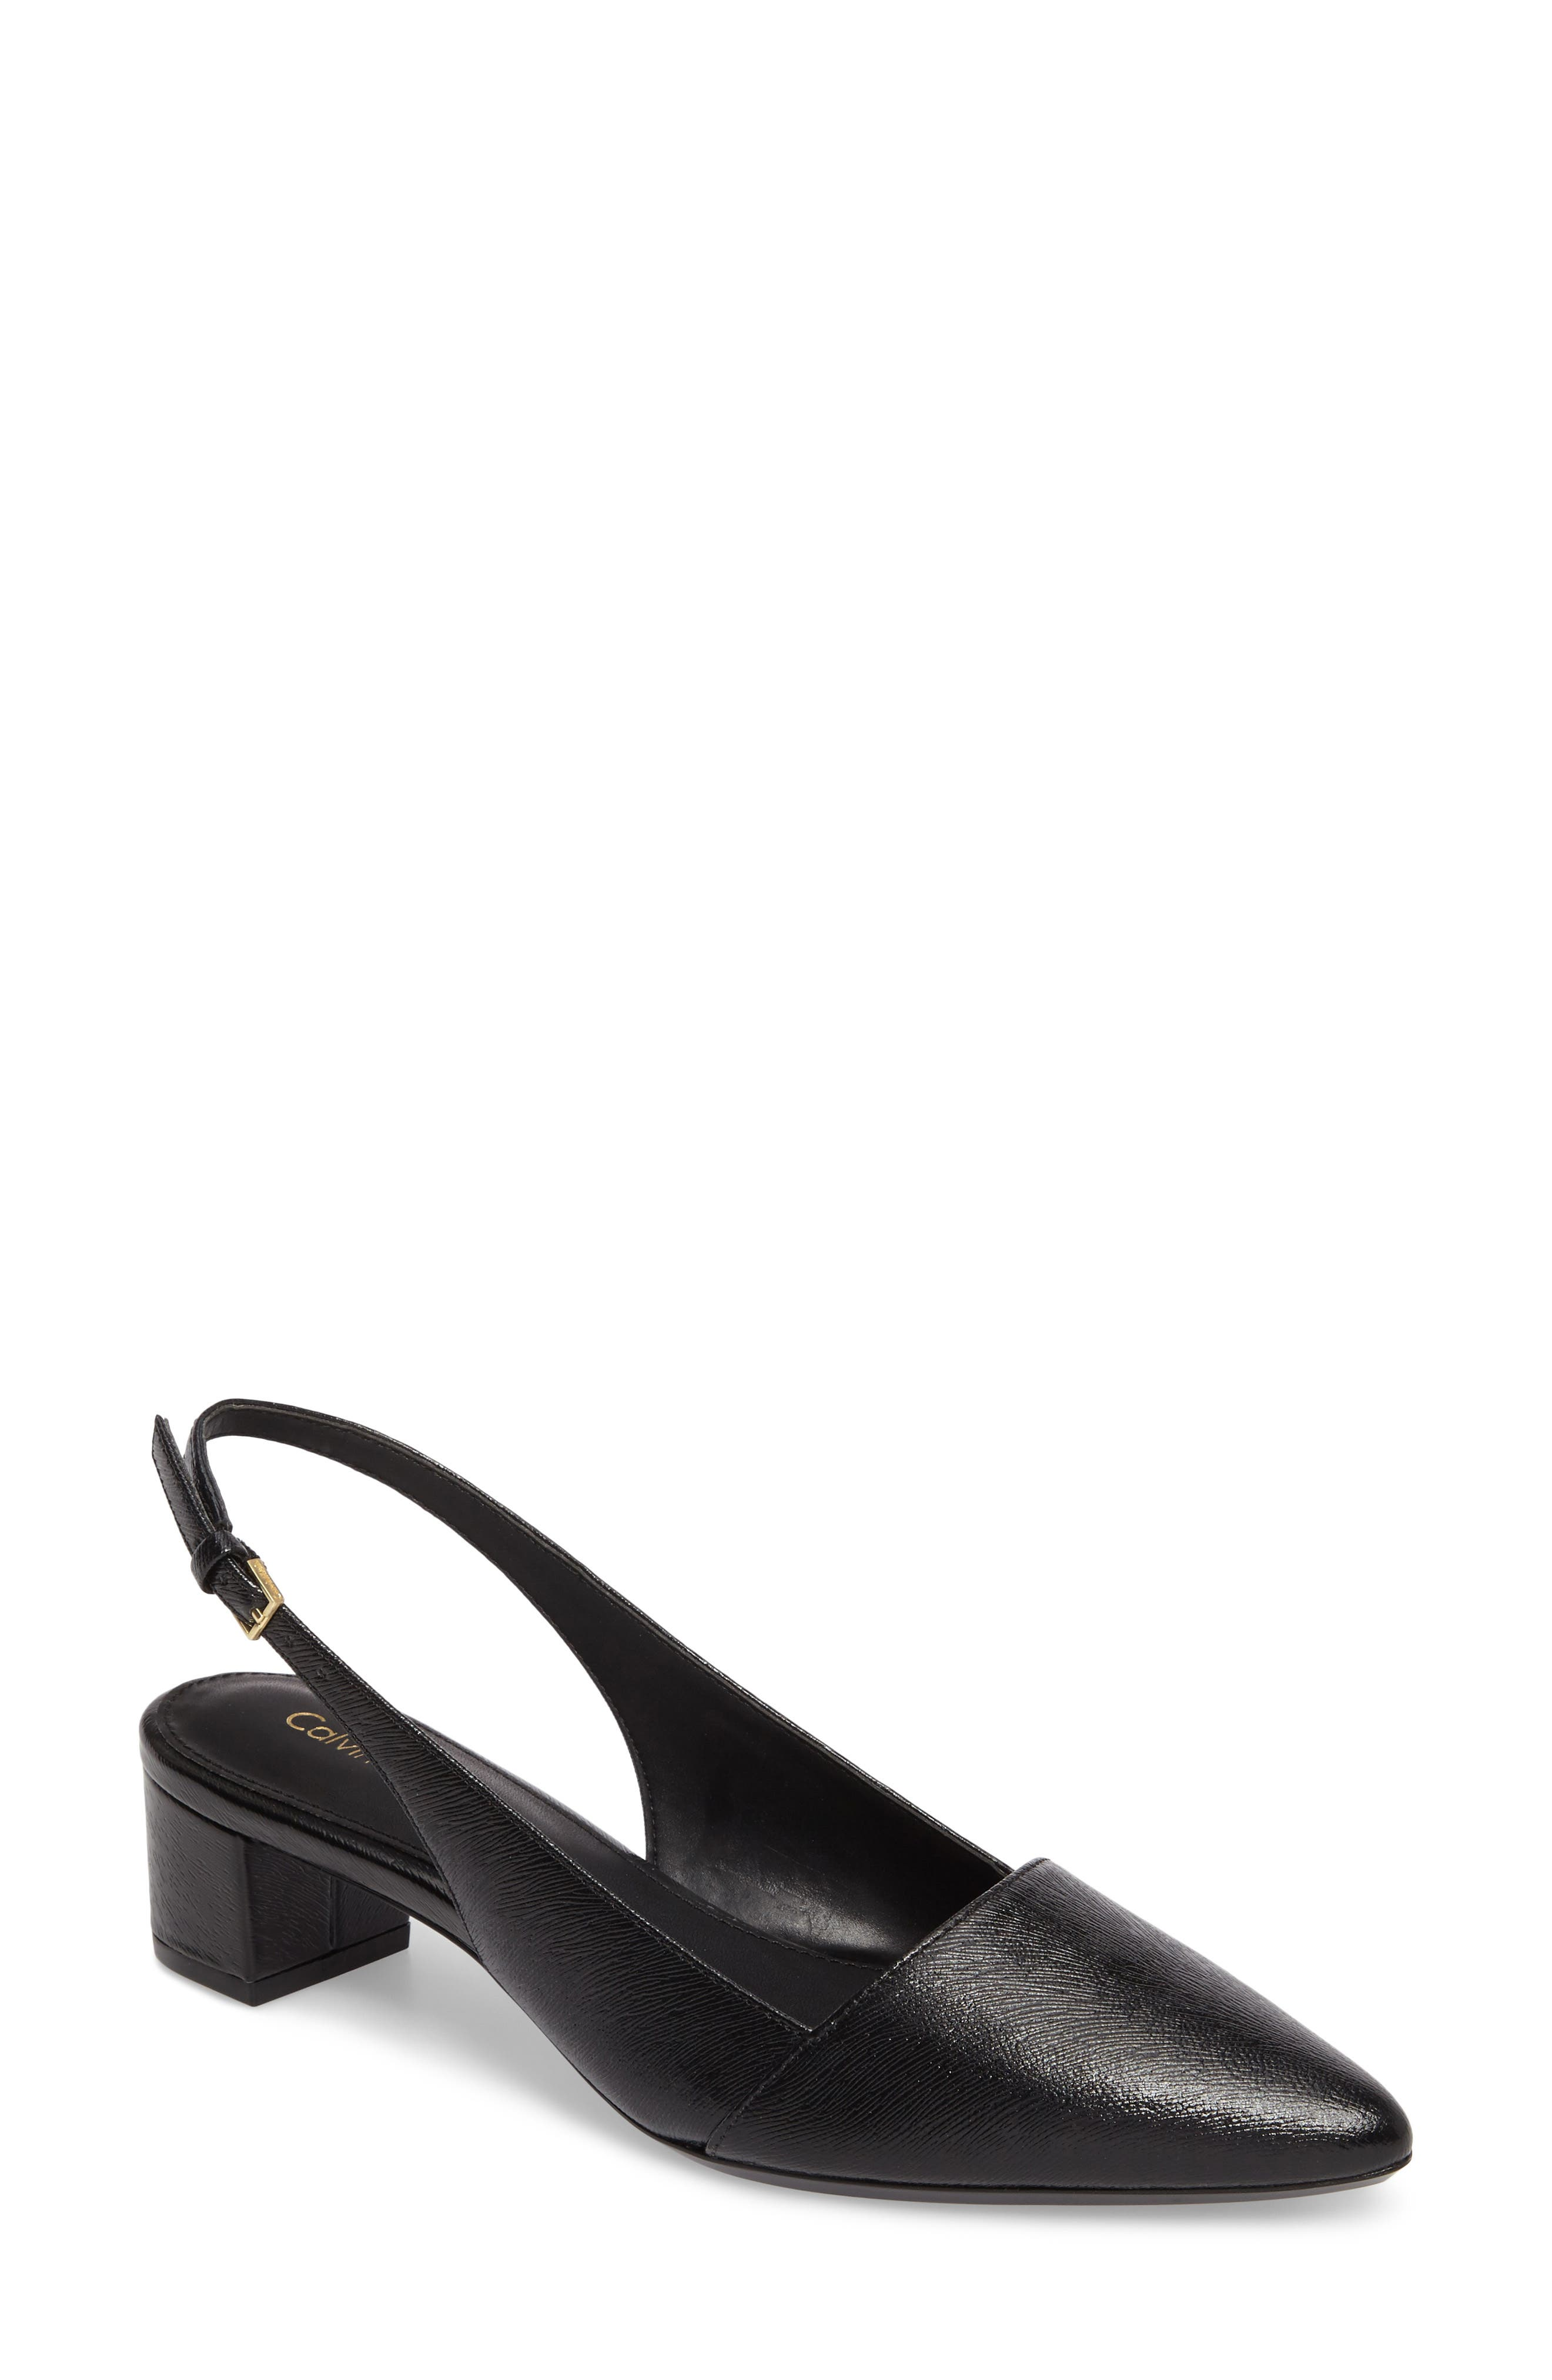 Galinda Slingback Pump,                         Main,                         color, BLACK LEATHER